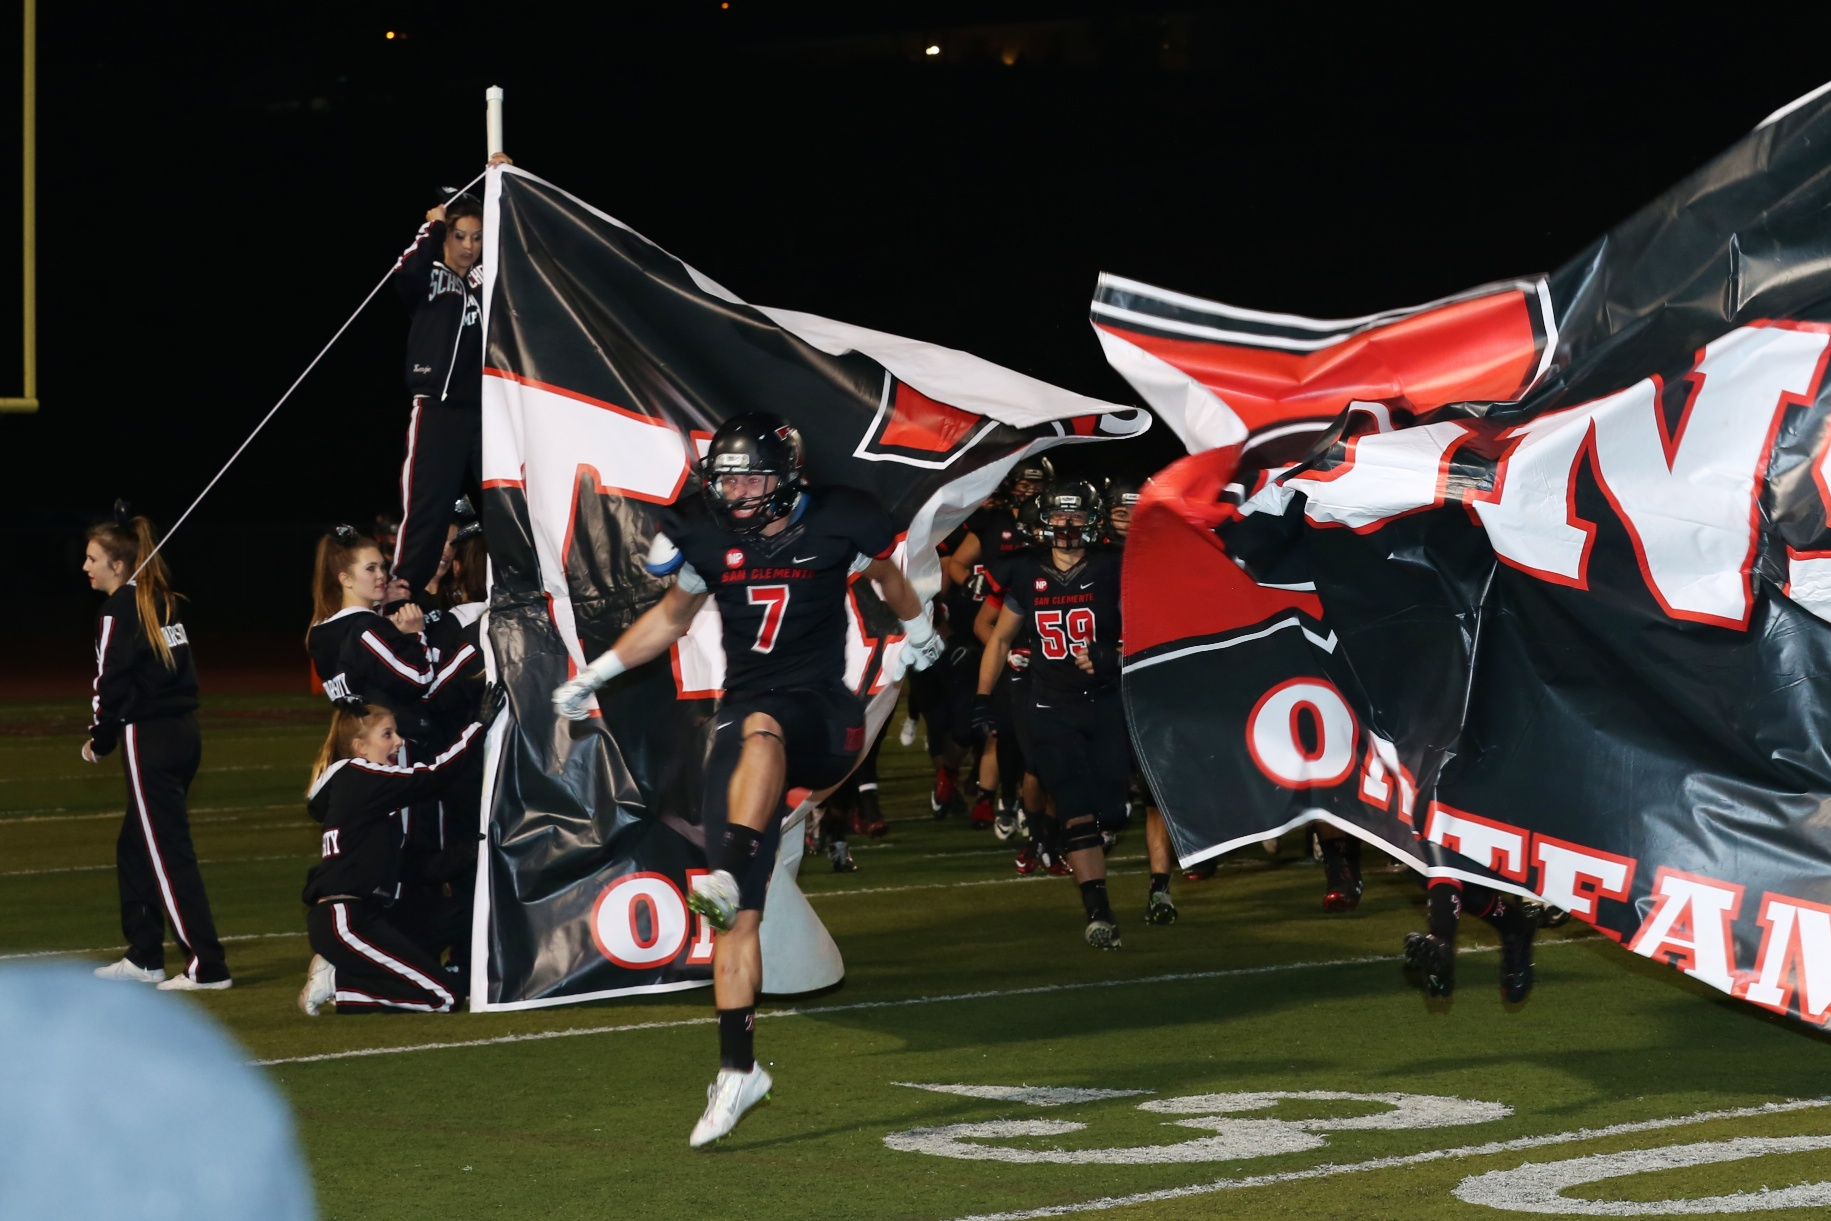 The San Clemente High School football team will play Trabuco Hills Dec. 5 for the CIF-SS Southwest Division Championship. Photo: Alan Gibby, zone57